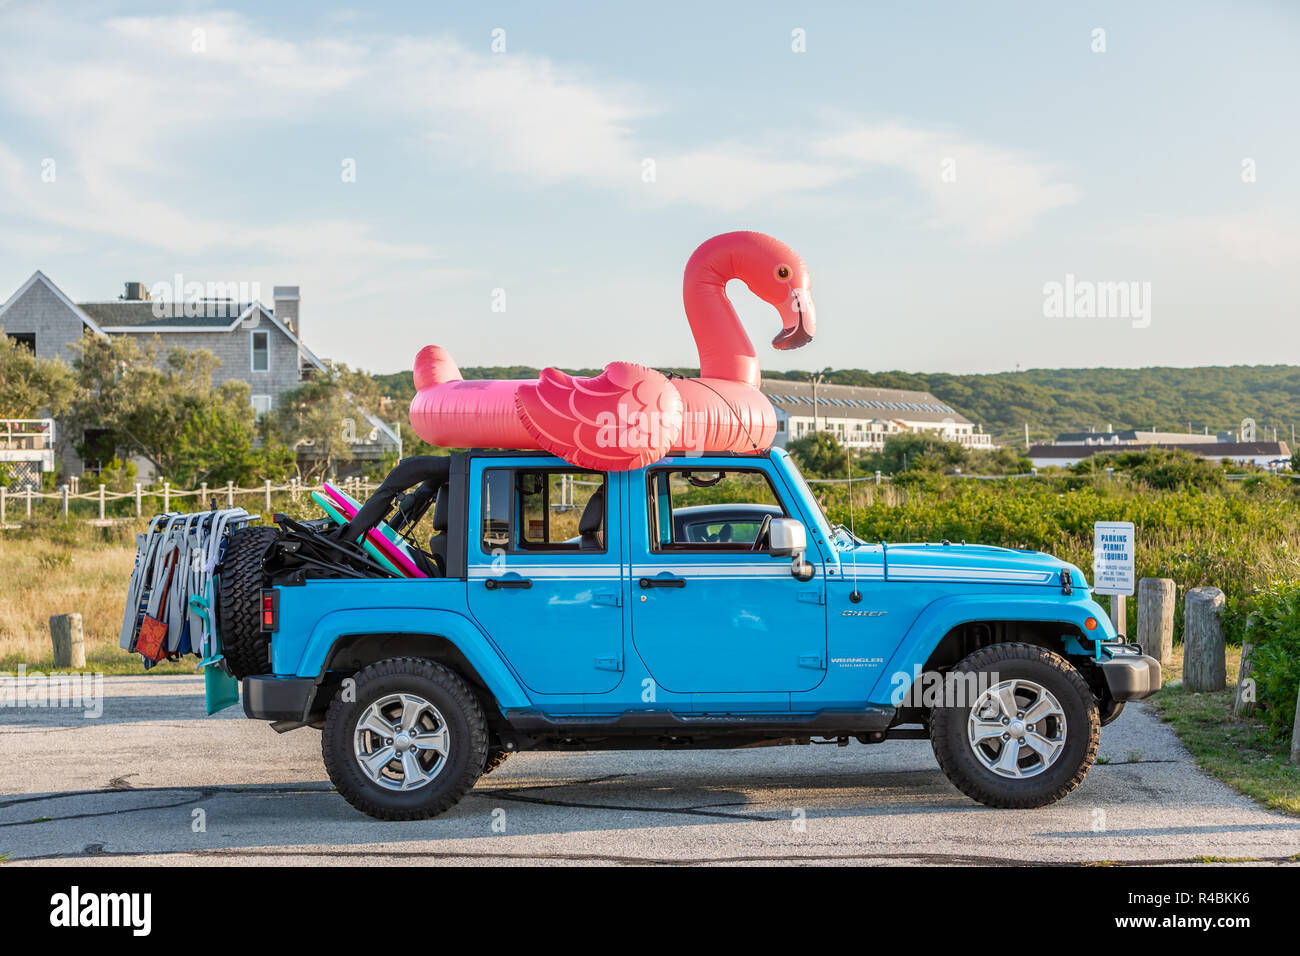 Blue jeep with a pink flamingo on top - Stock Image